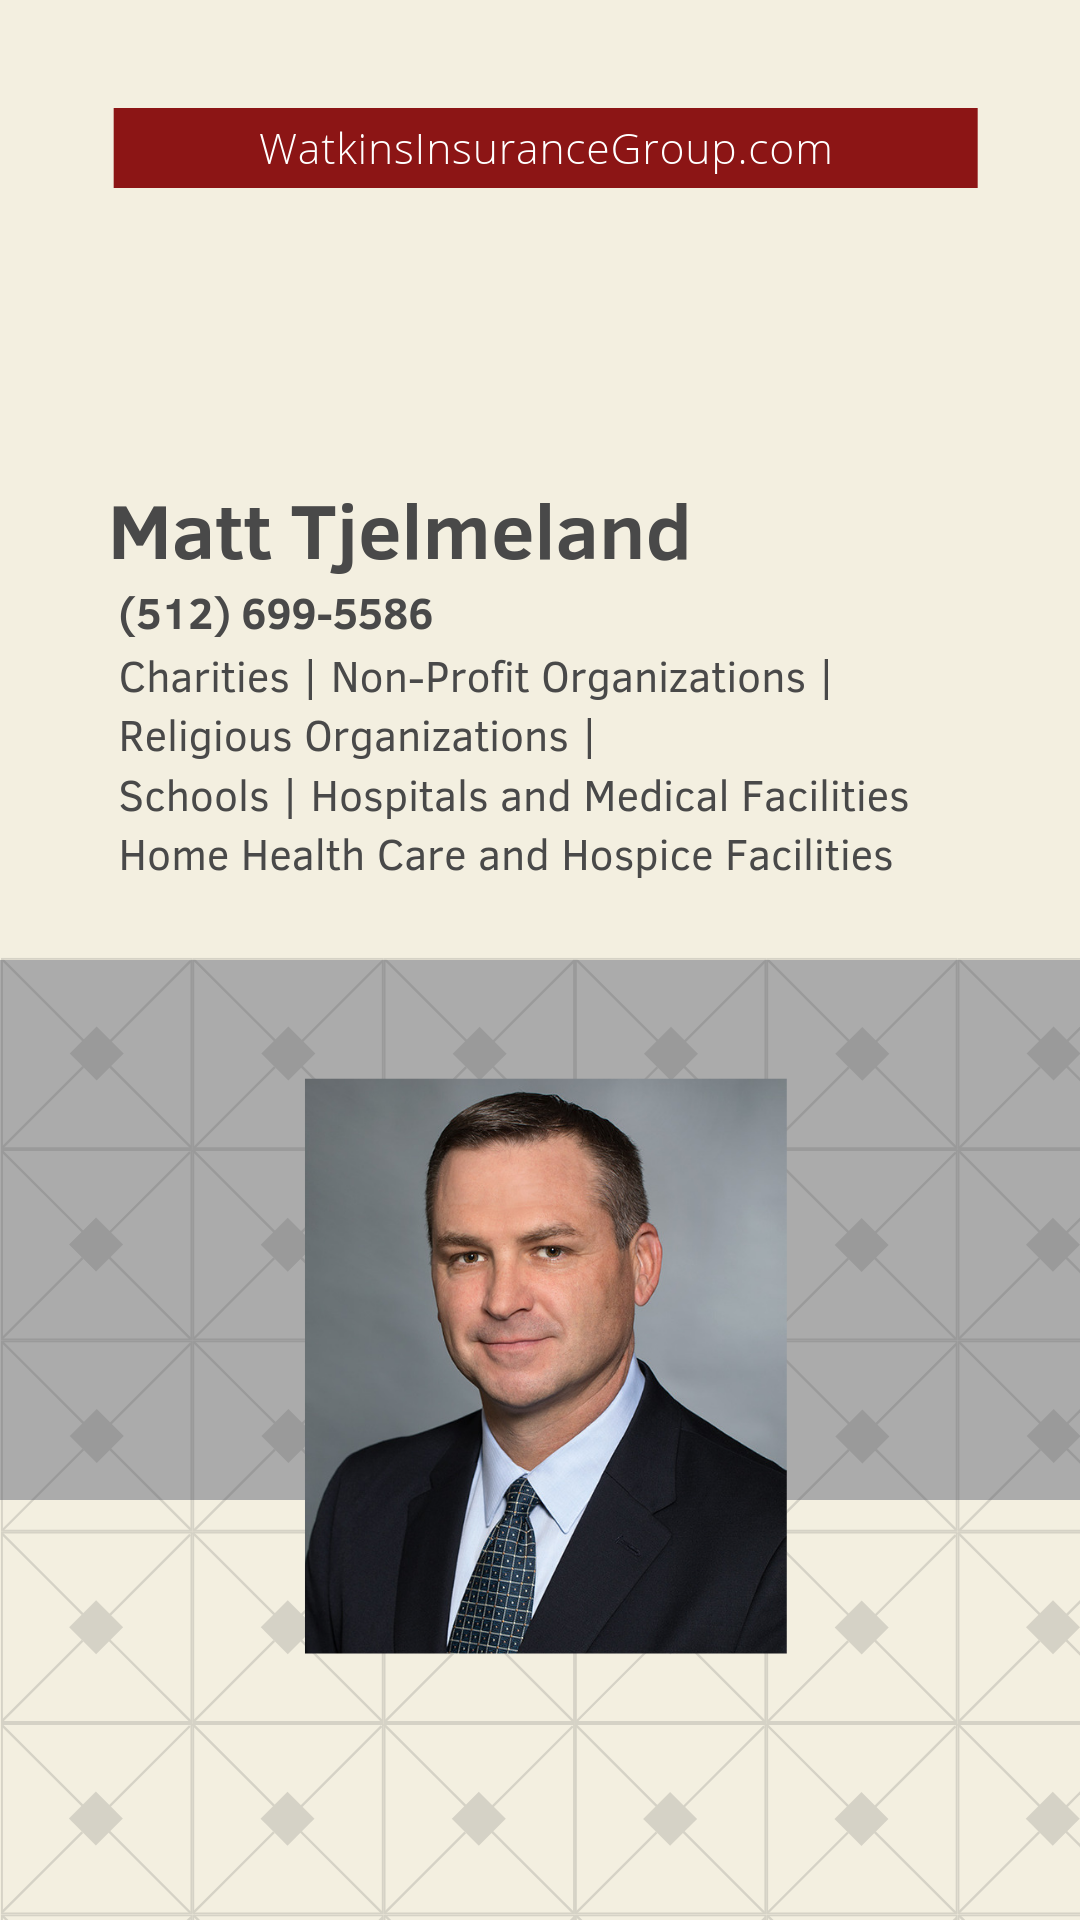 Matt Tjelmeland | Social services, Home health care ...